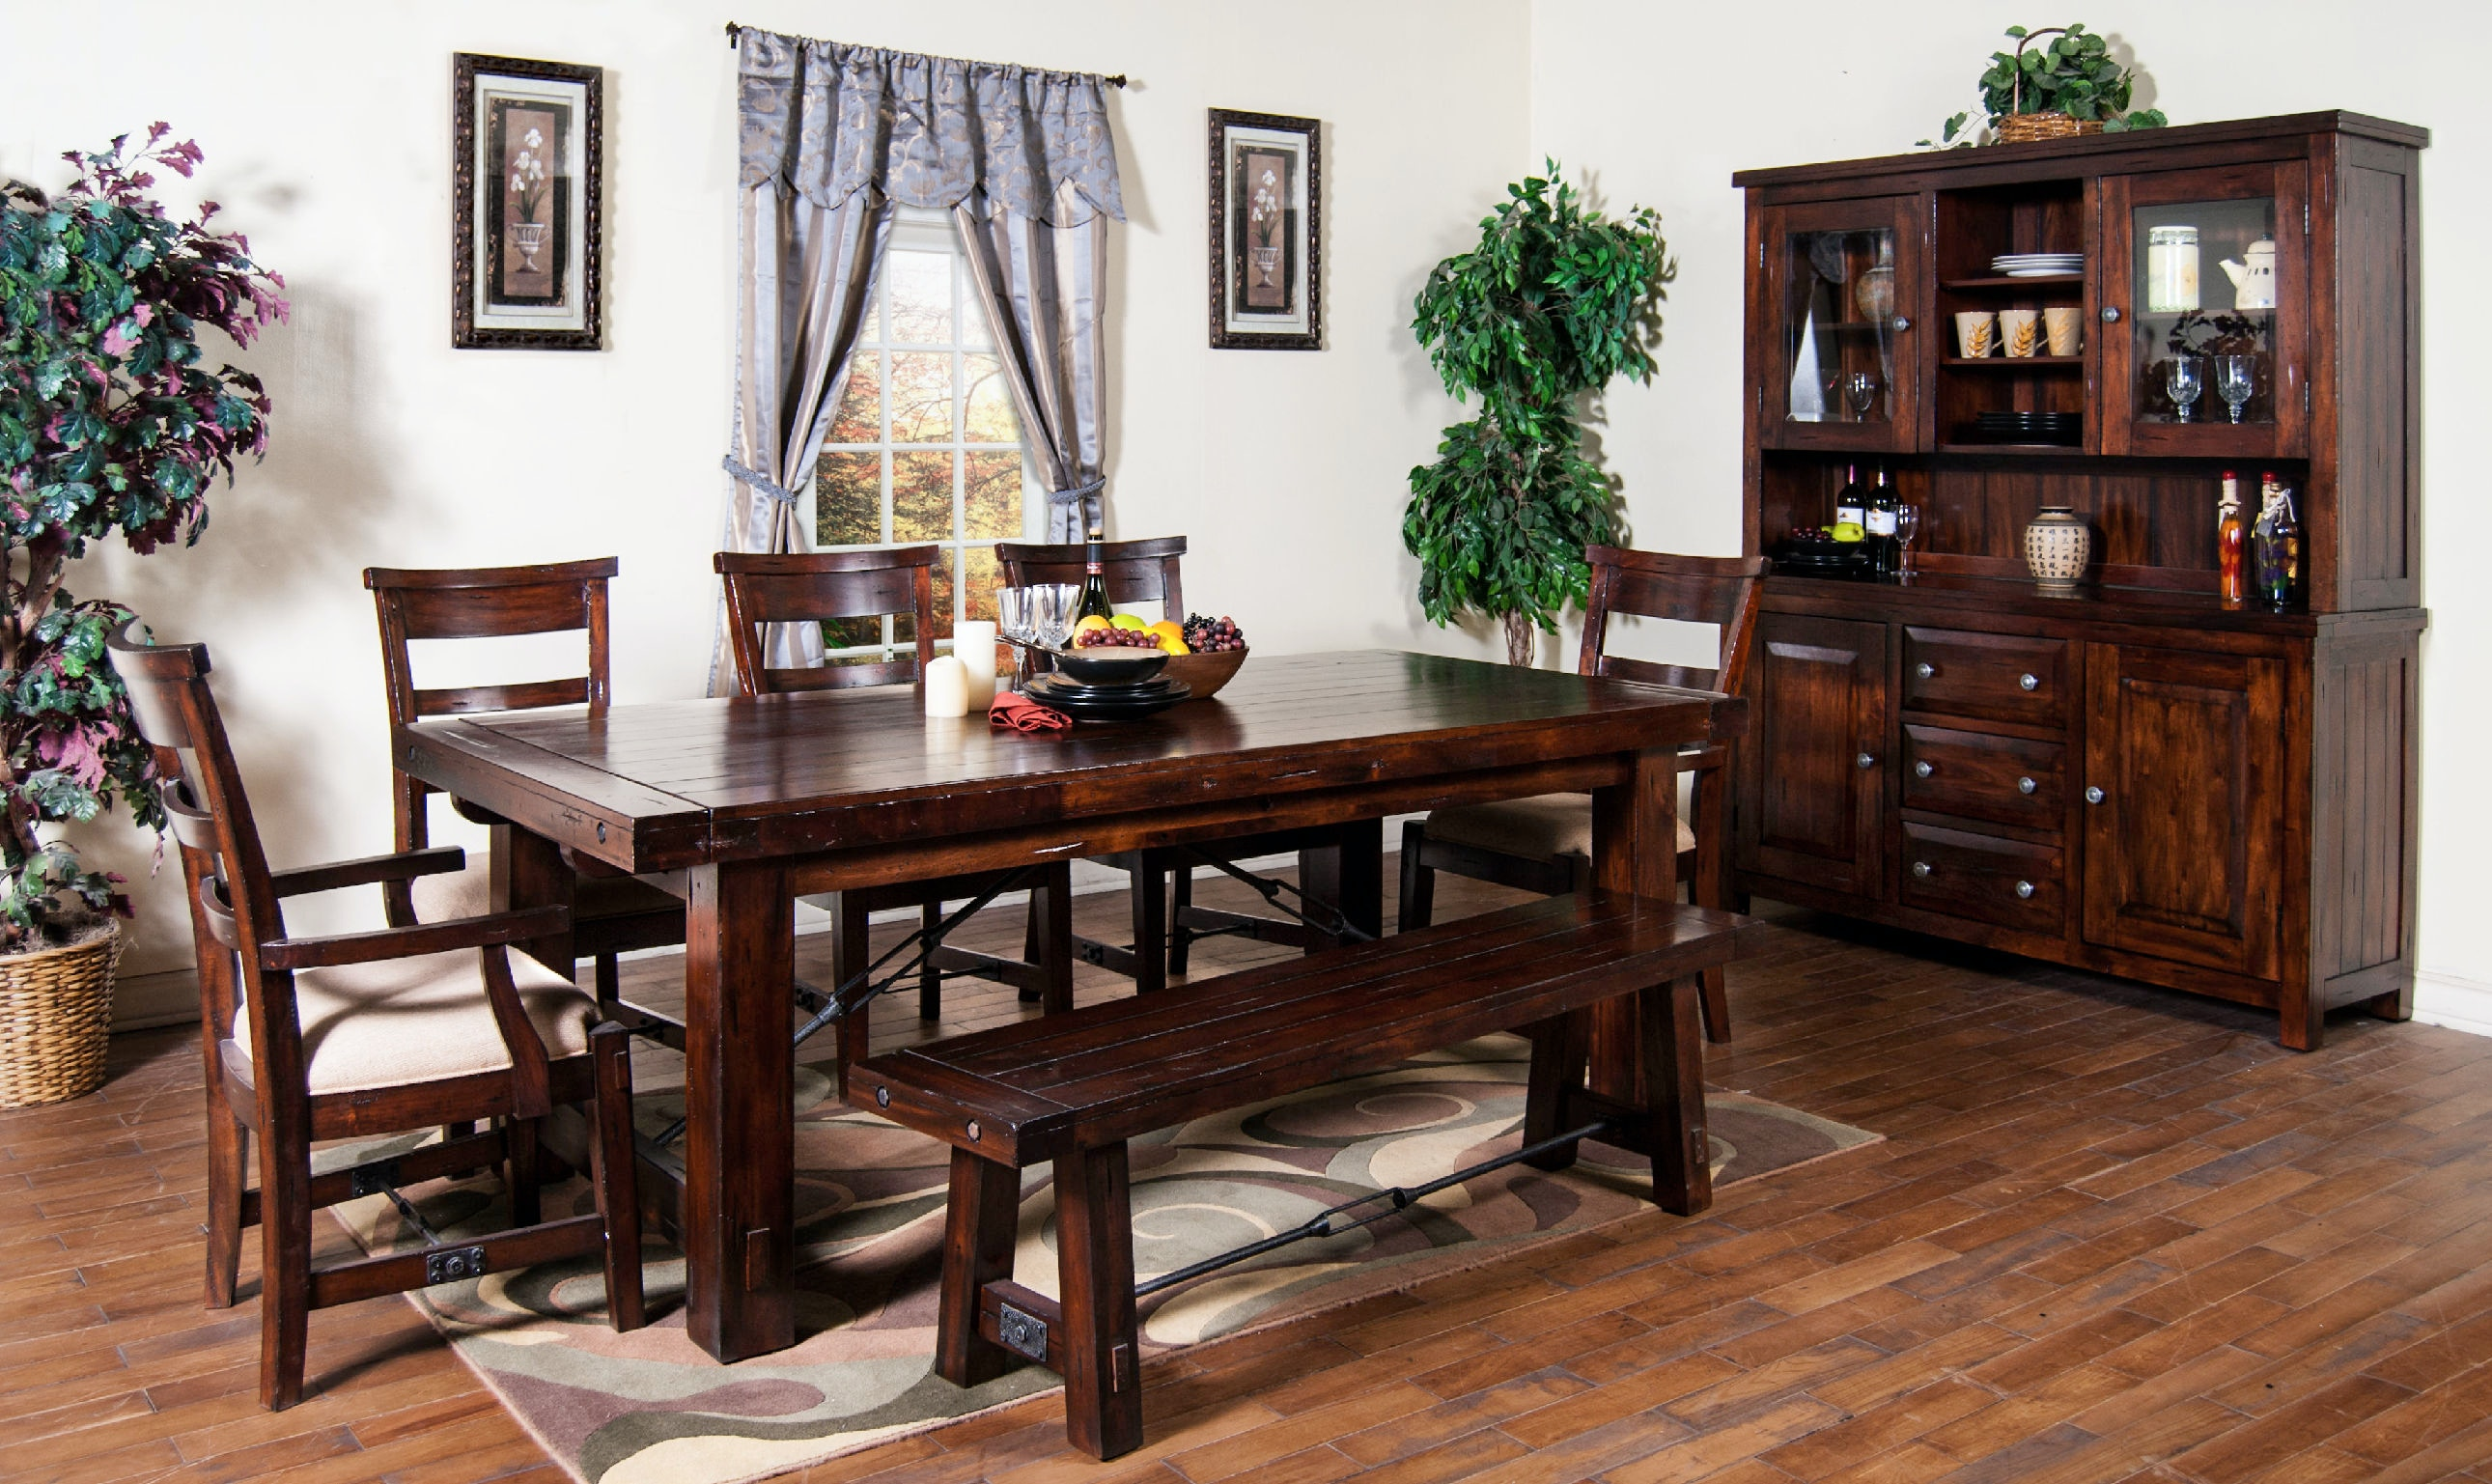 The Sunny Designs Dining Room Vineyard Extension Table Is Available In The  Freehold, NY Area From Tip Top Furniture. Vineyard Extension Table 1316RM  Sunny ...